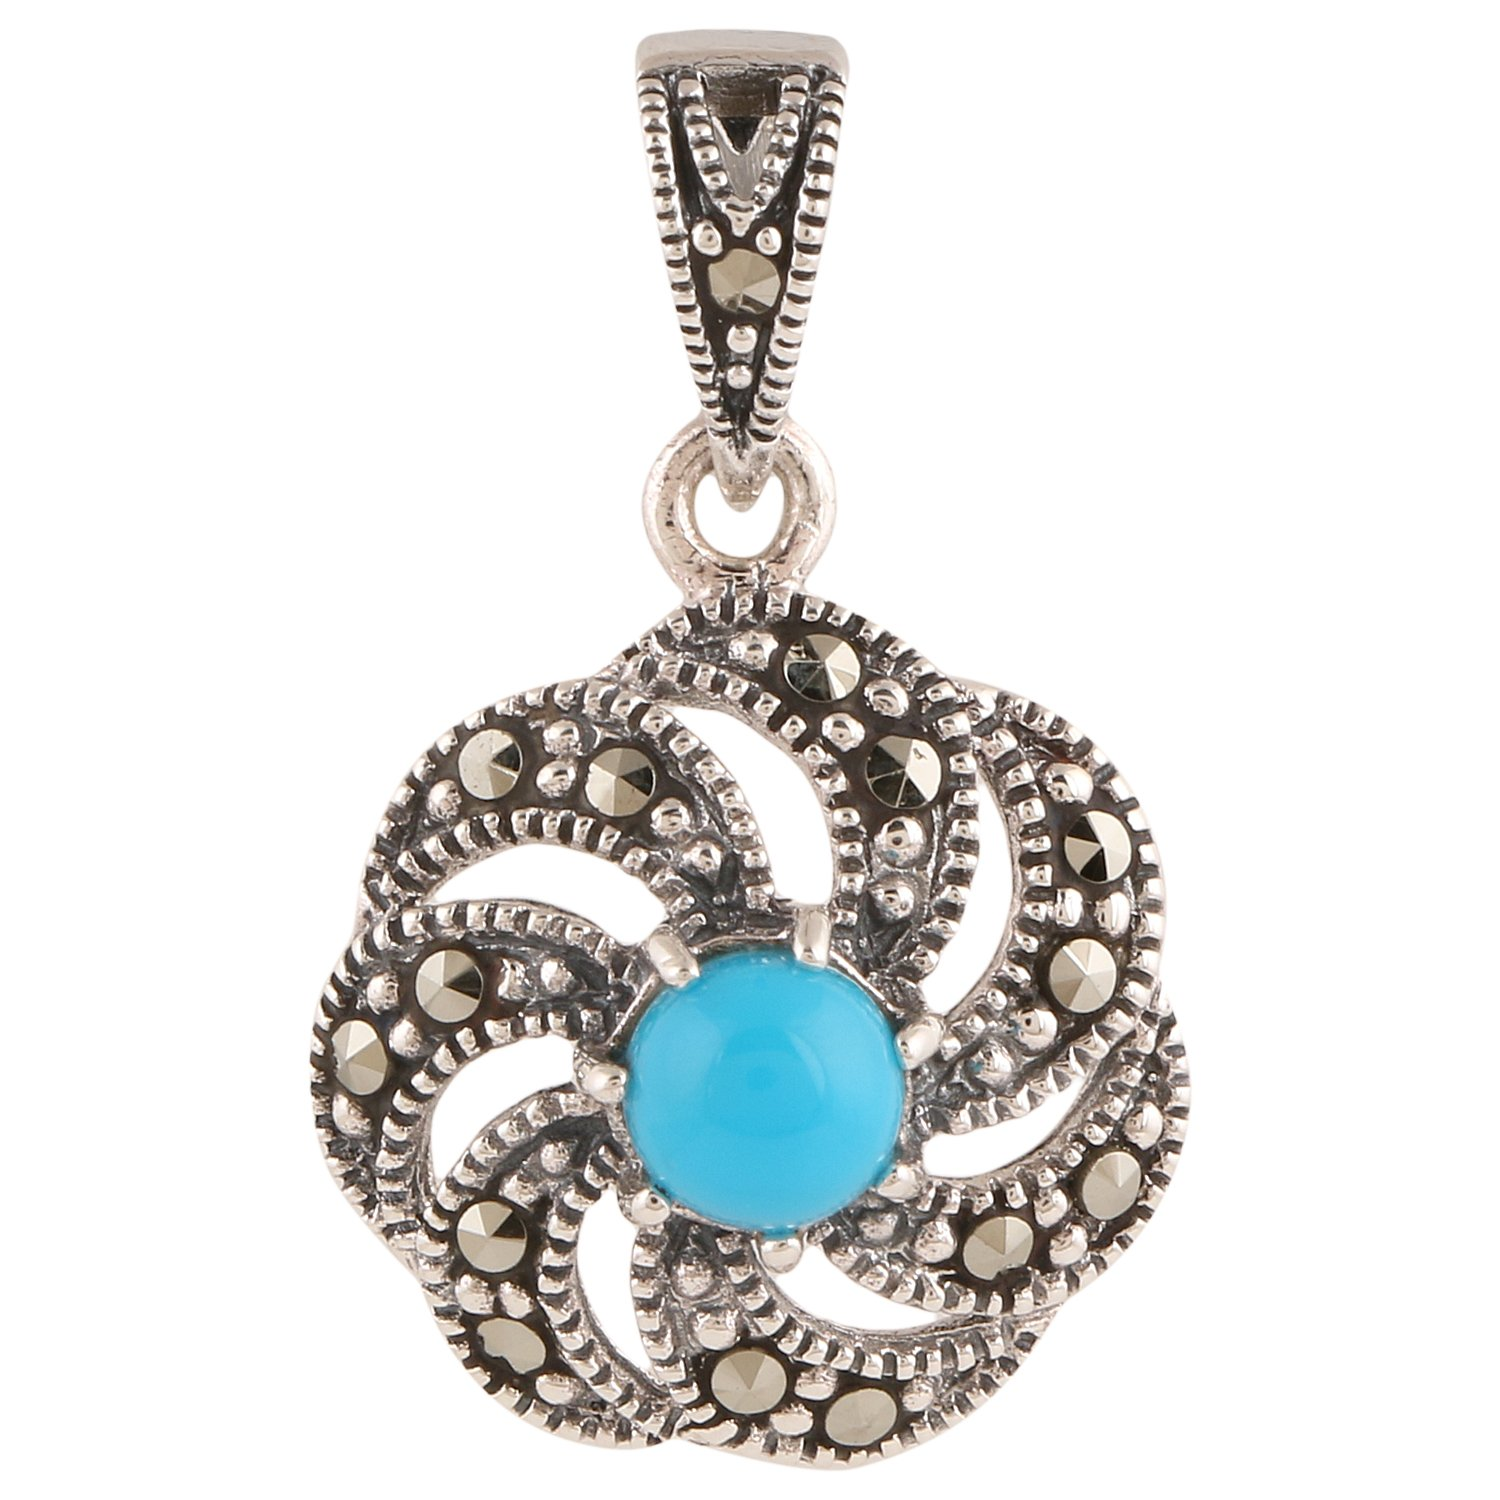 Ananth Jewels 925 Silver Swarovski Marcasite Pendant for Women